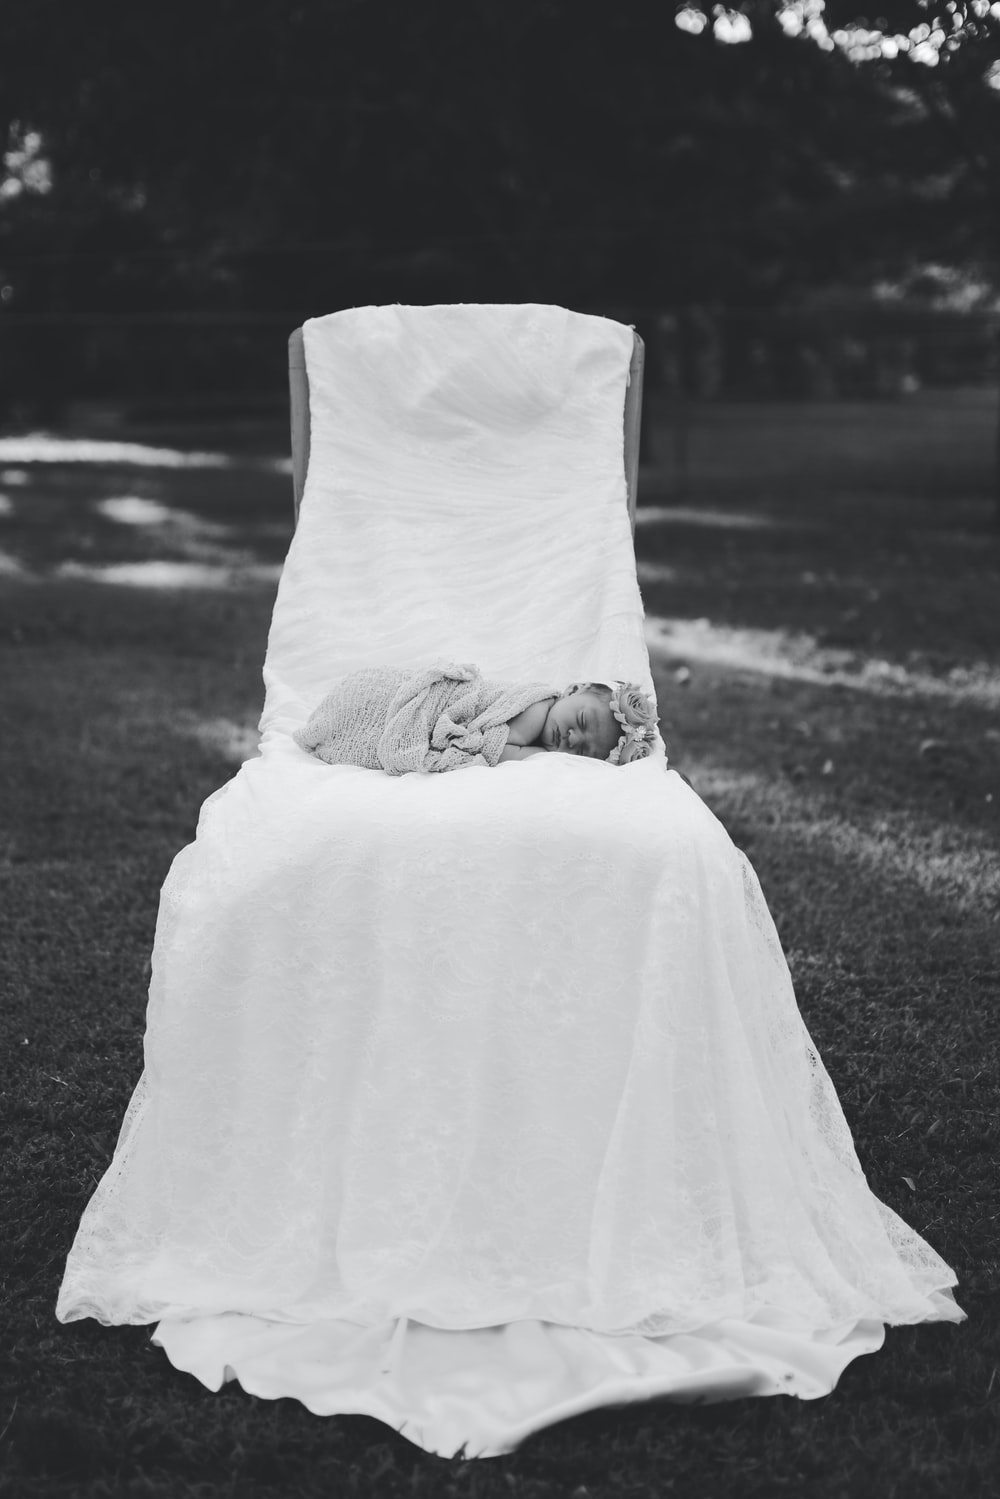 Photoshoot done with a wedding dress